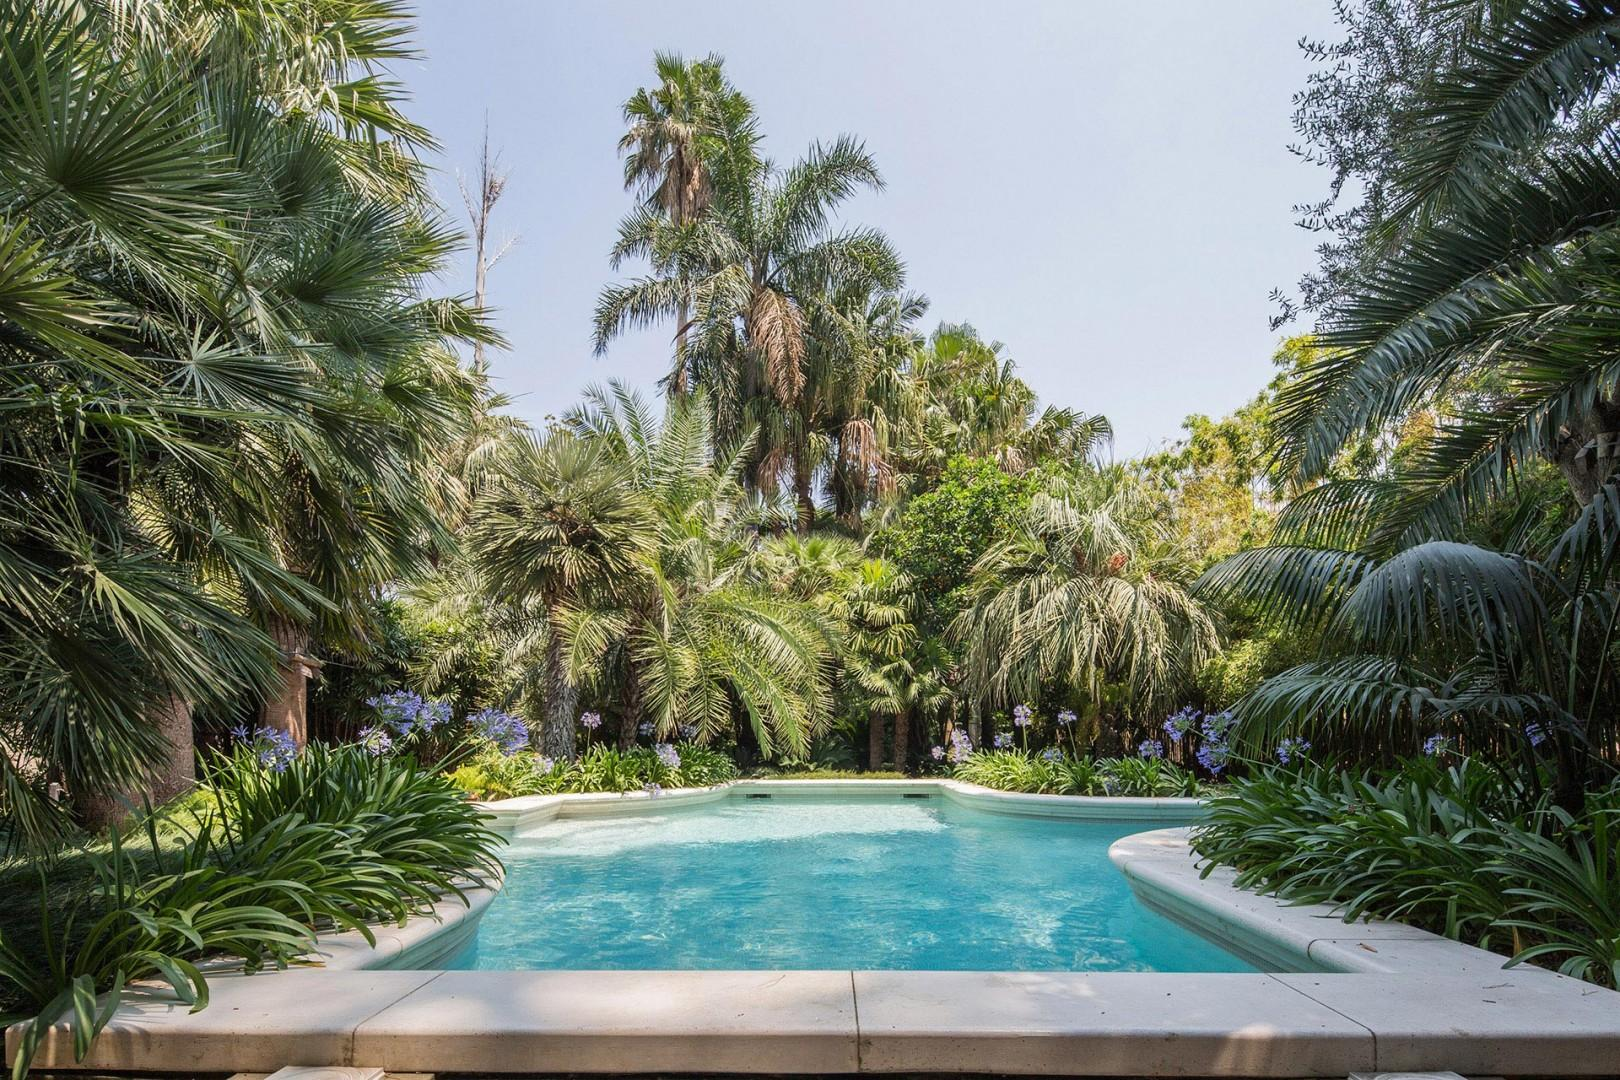 Lovely swimming pool is shared with the owner of the villa who uses it only occasionally.